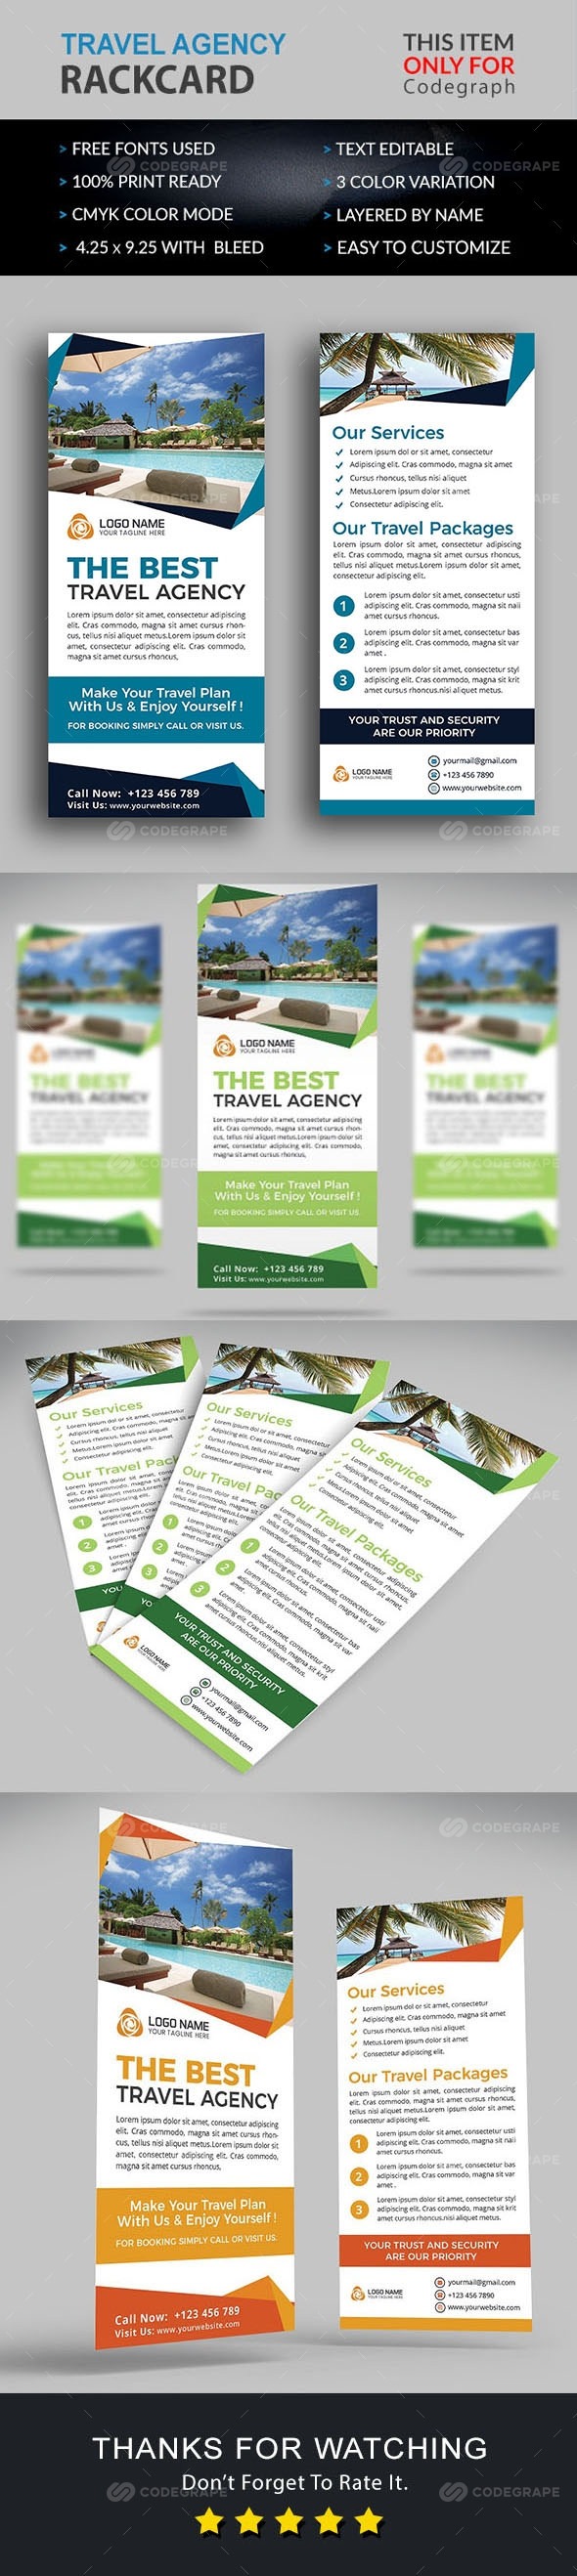 Travel Agency Rackcard Flyer